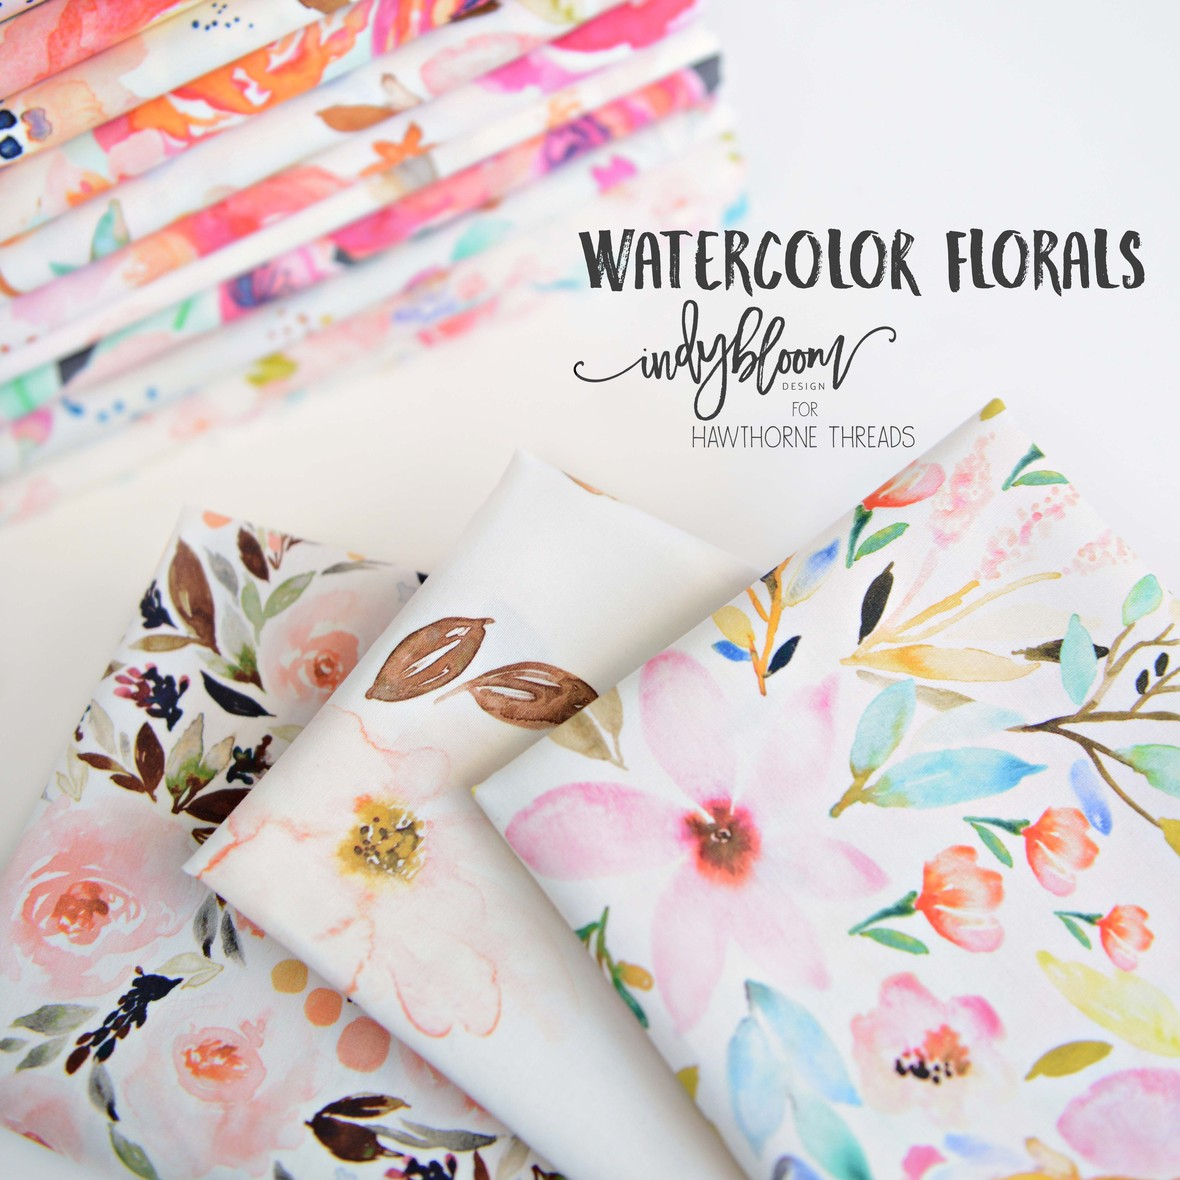 New Watercolor Florals from Indy Bloom